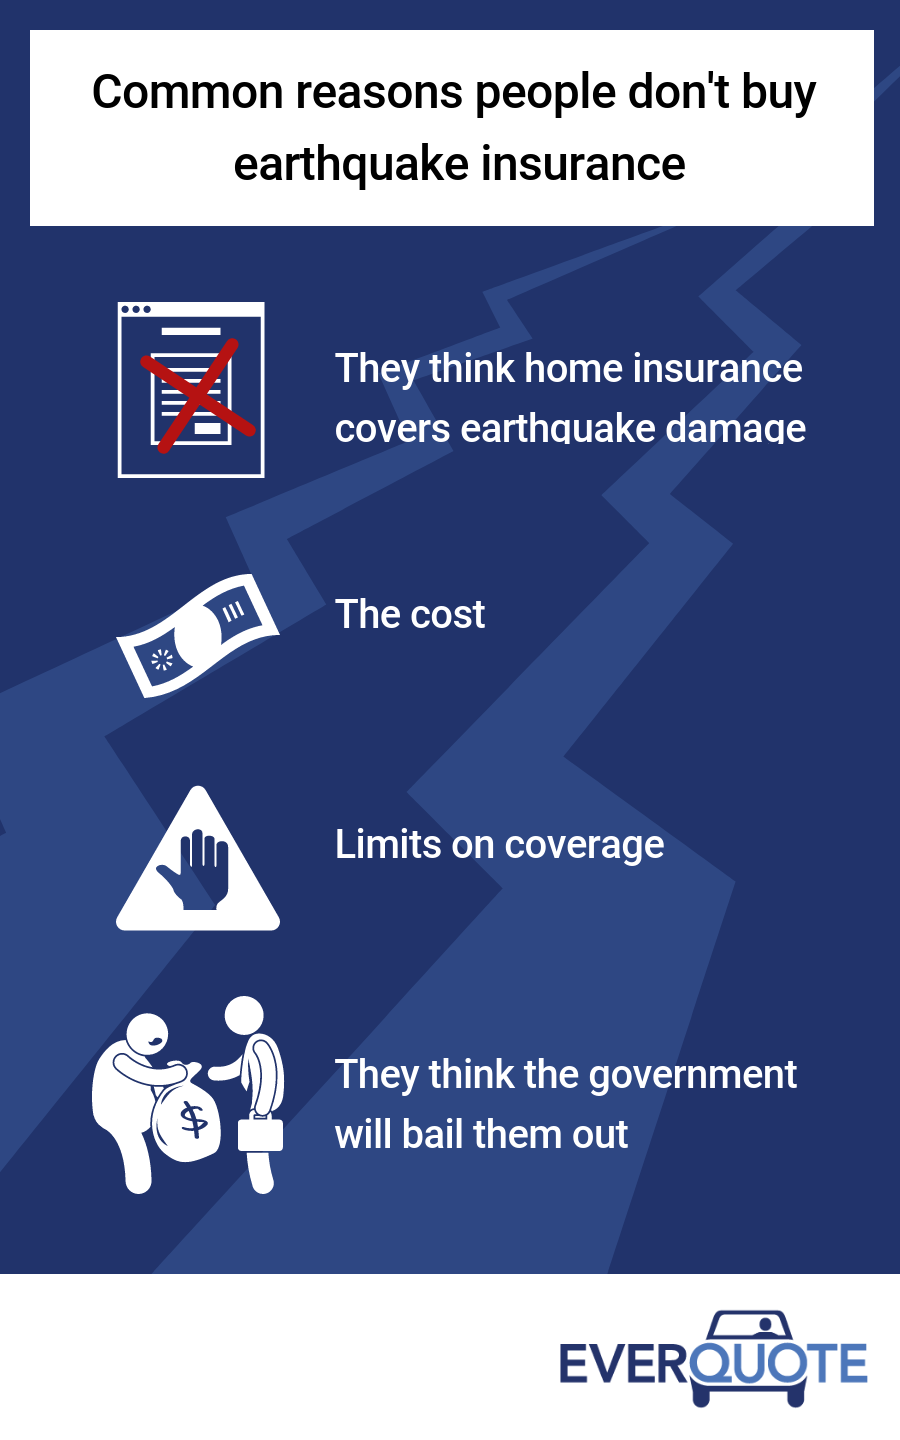 Why people don't buy earthquake insurance